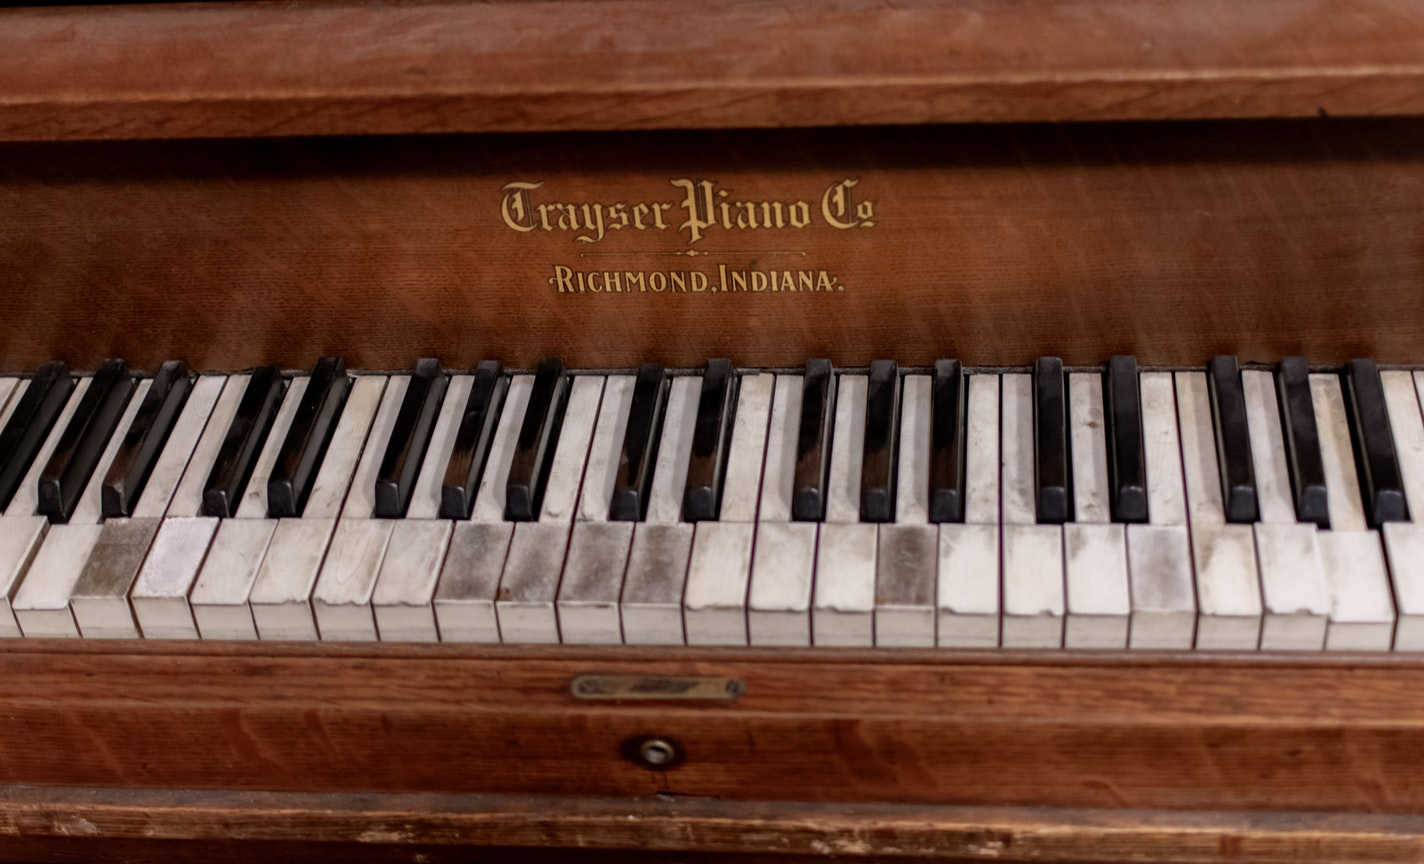 An older piano. An ideal assisted living facility would offer activities like piano playing for residents.